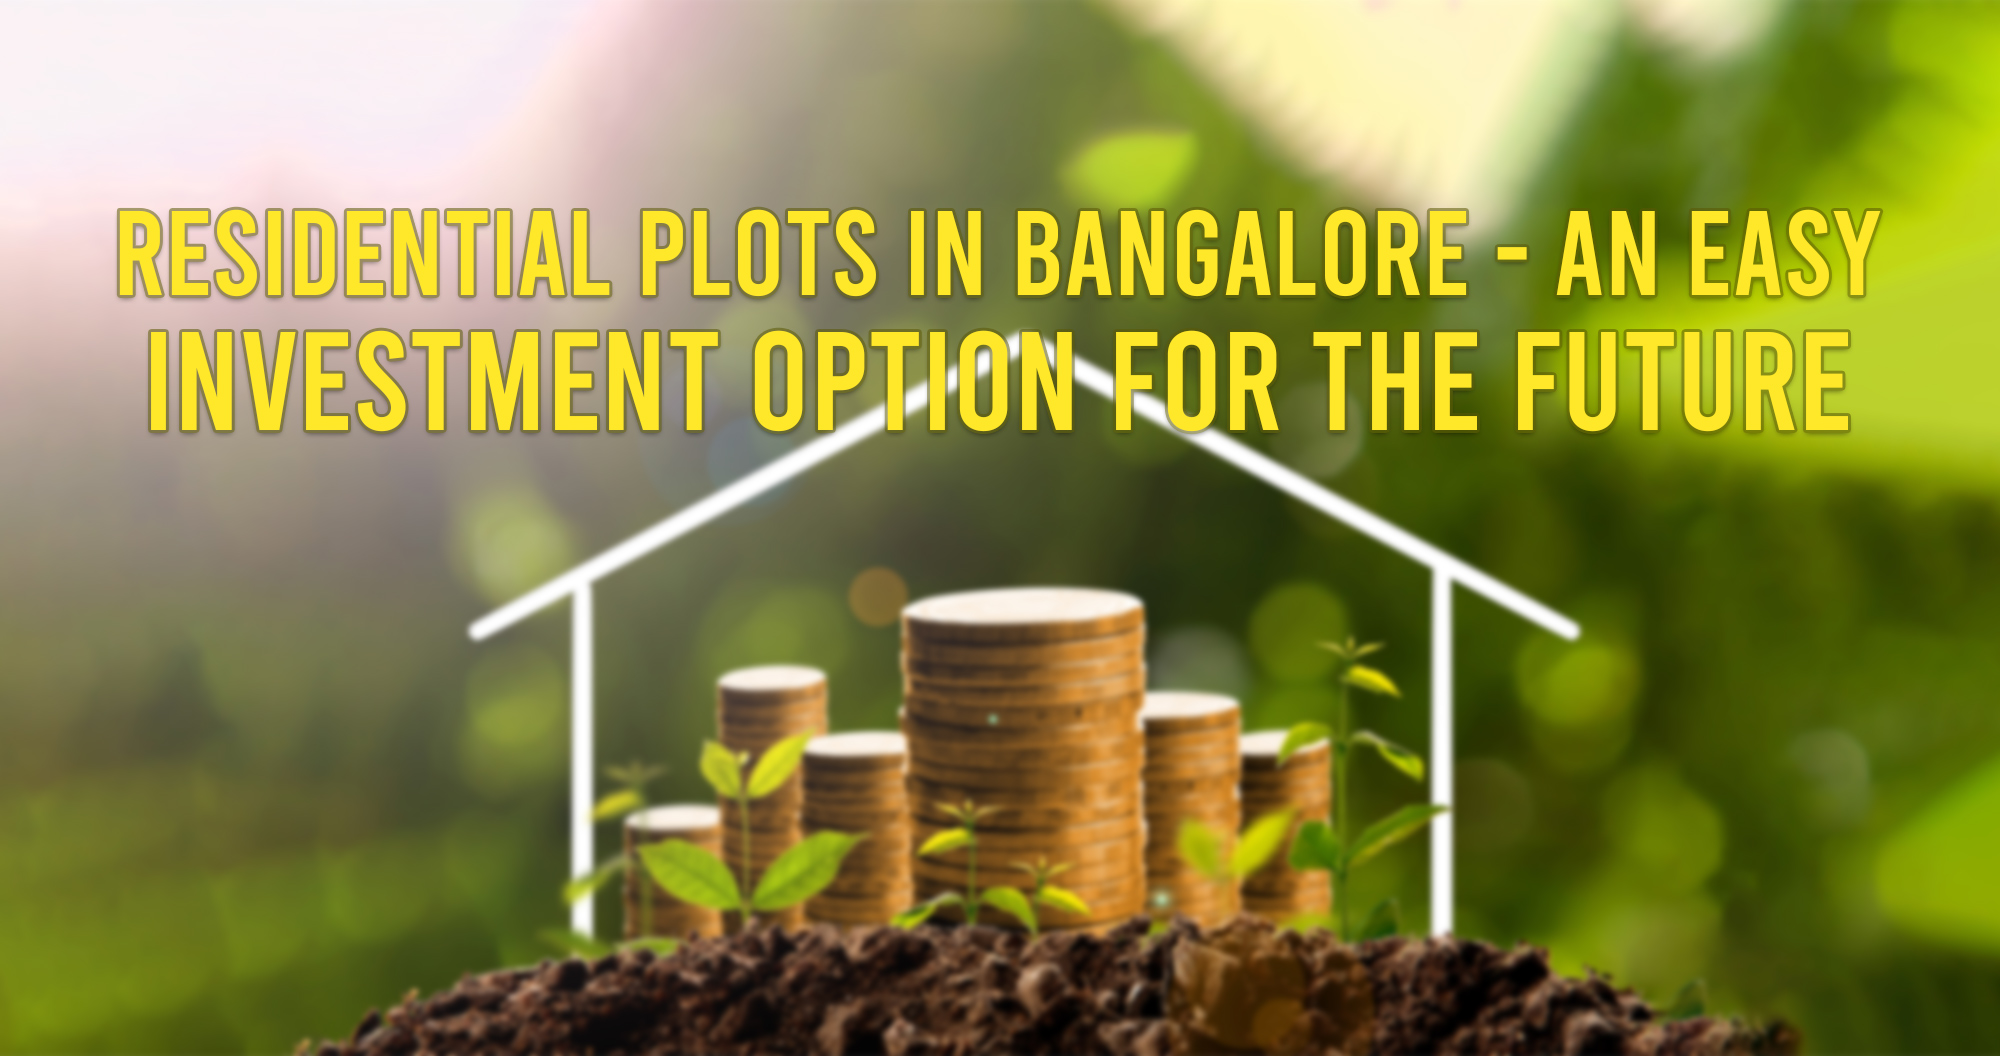 Residential Plots in Bangalore - An Easy Investment Option For The Future